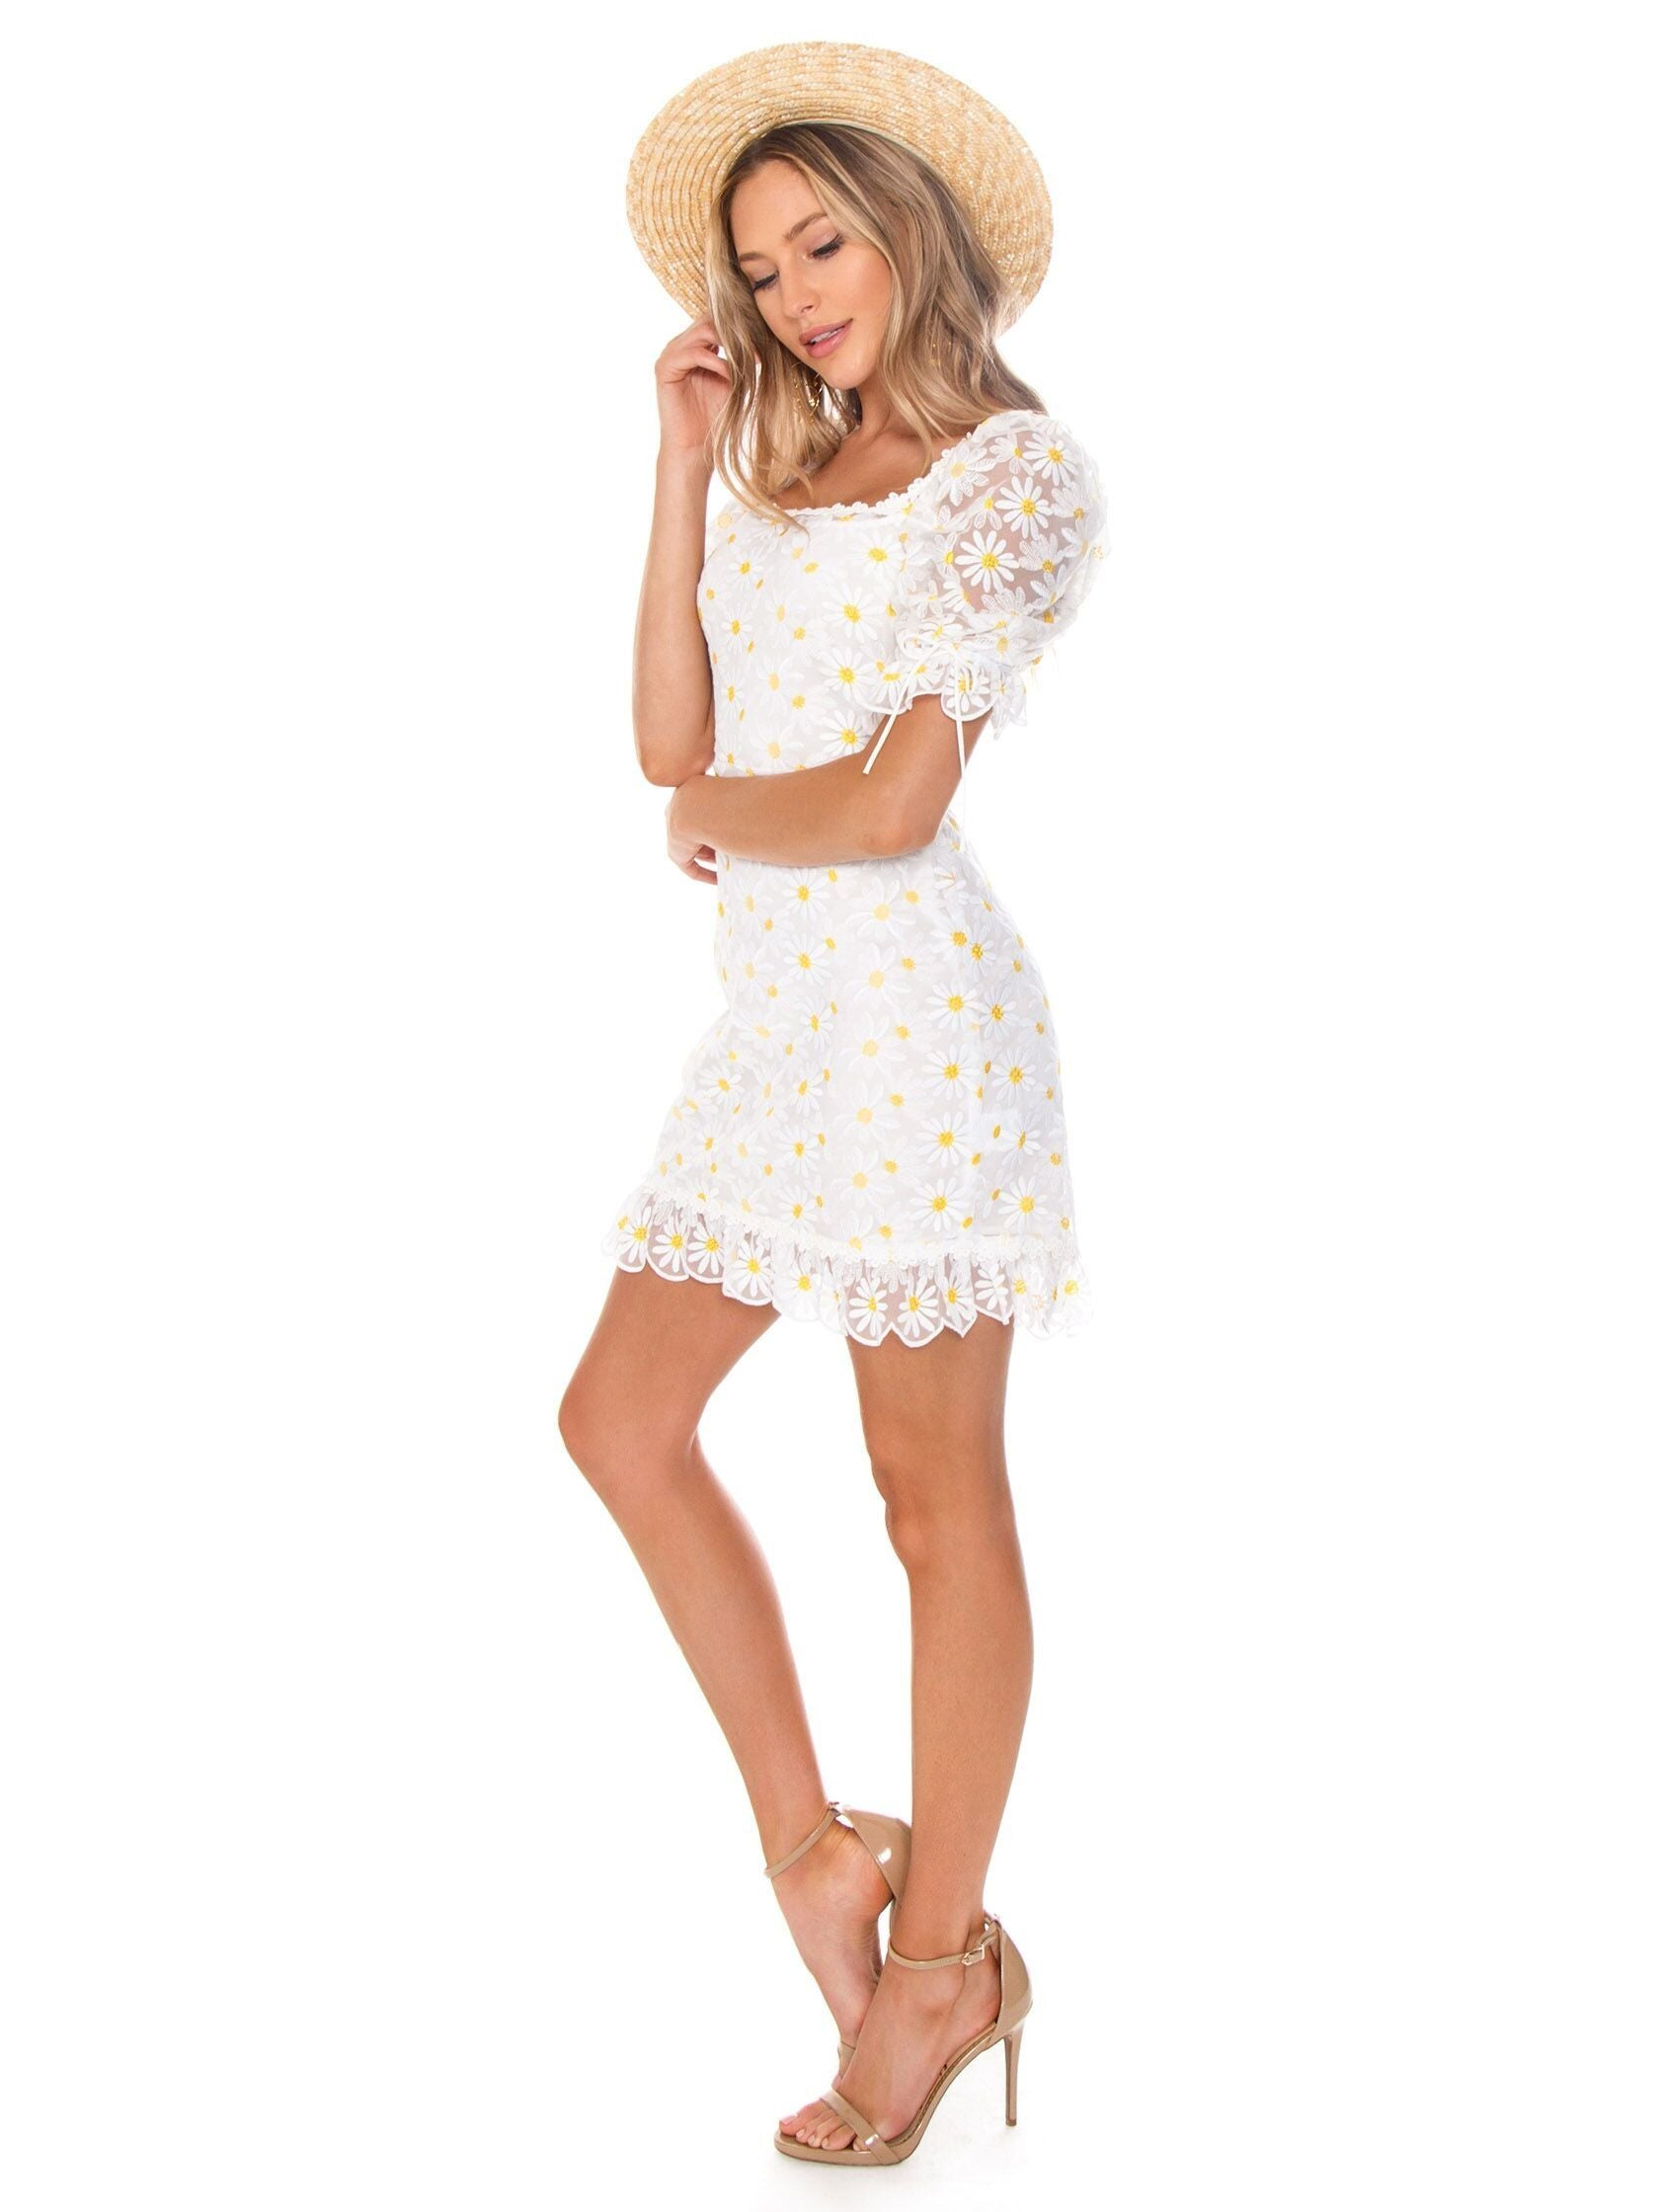 Woman wearing a dress rental from For Love & Lemons called Brulee Daisy Mini Dress